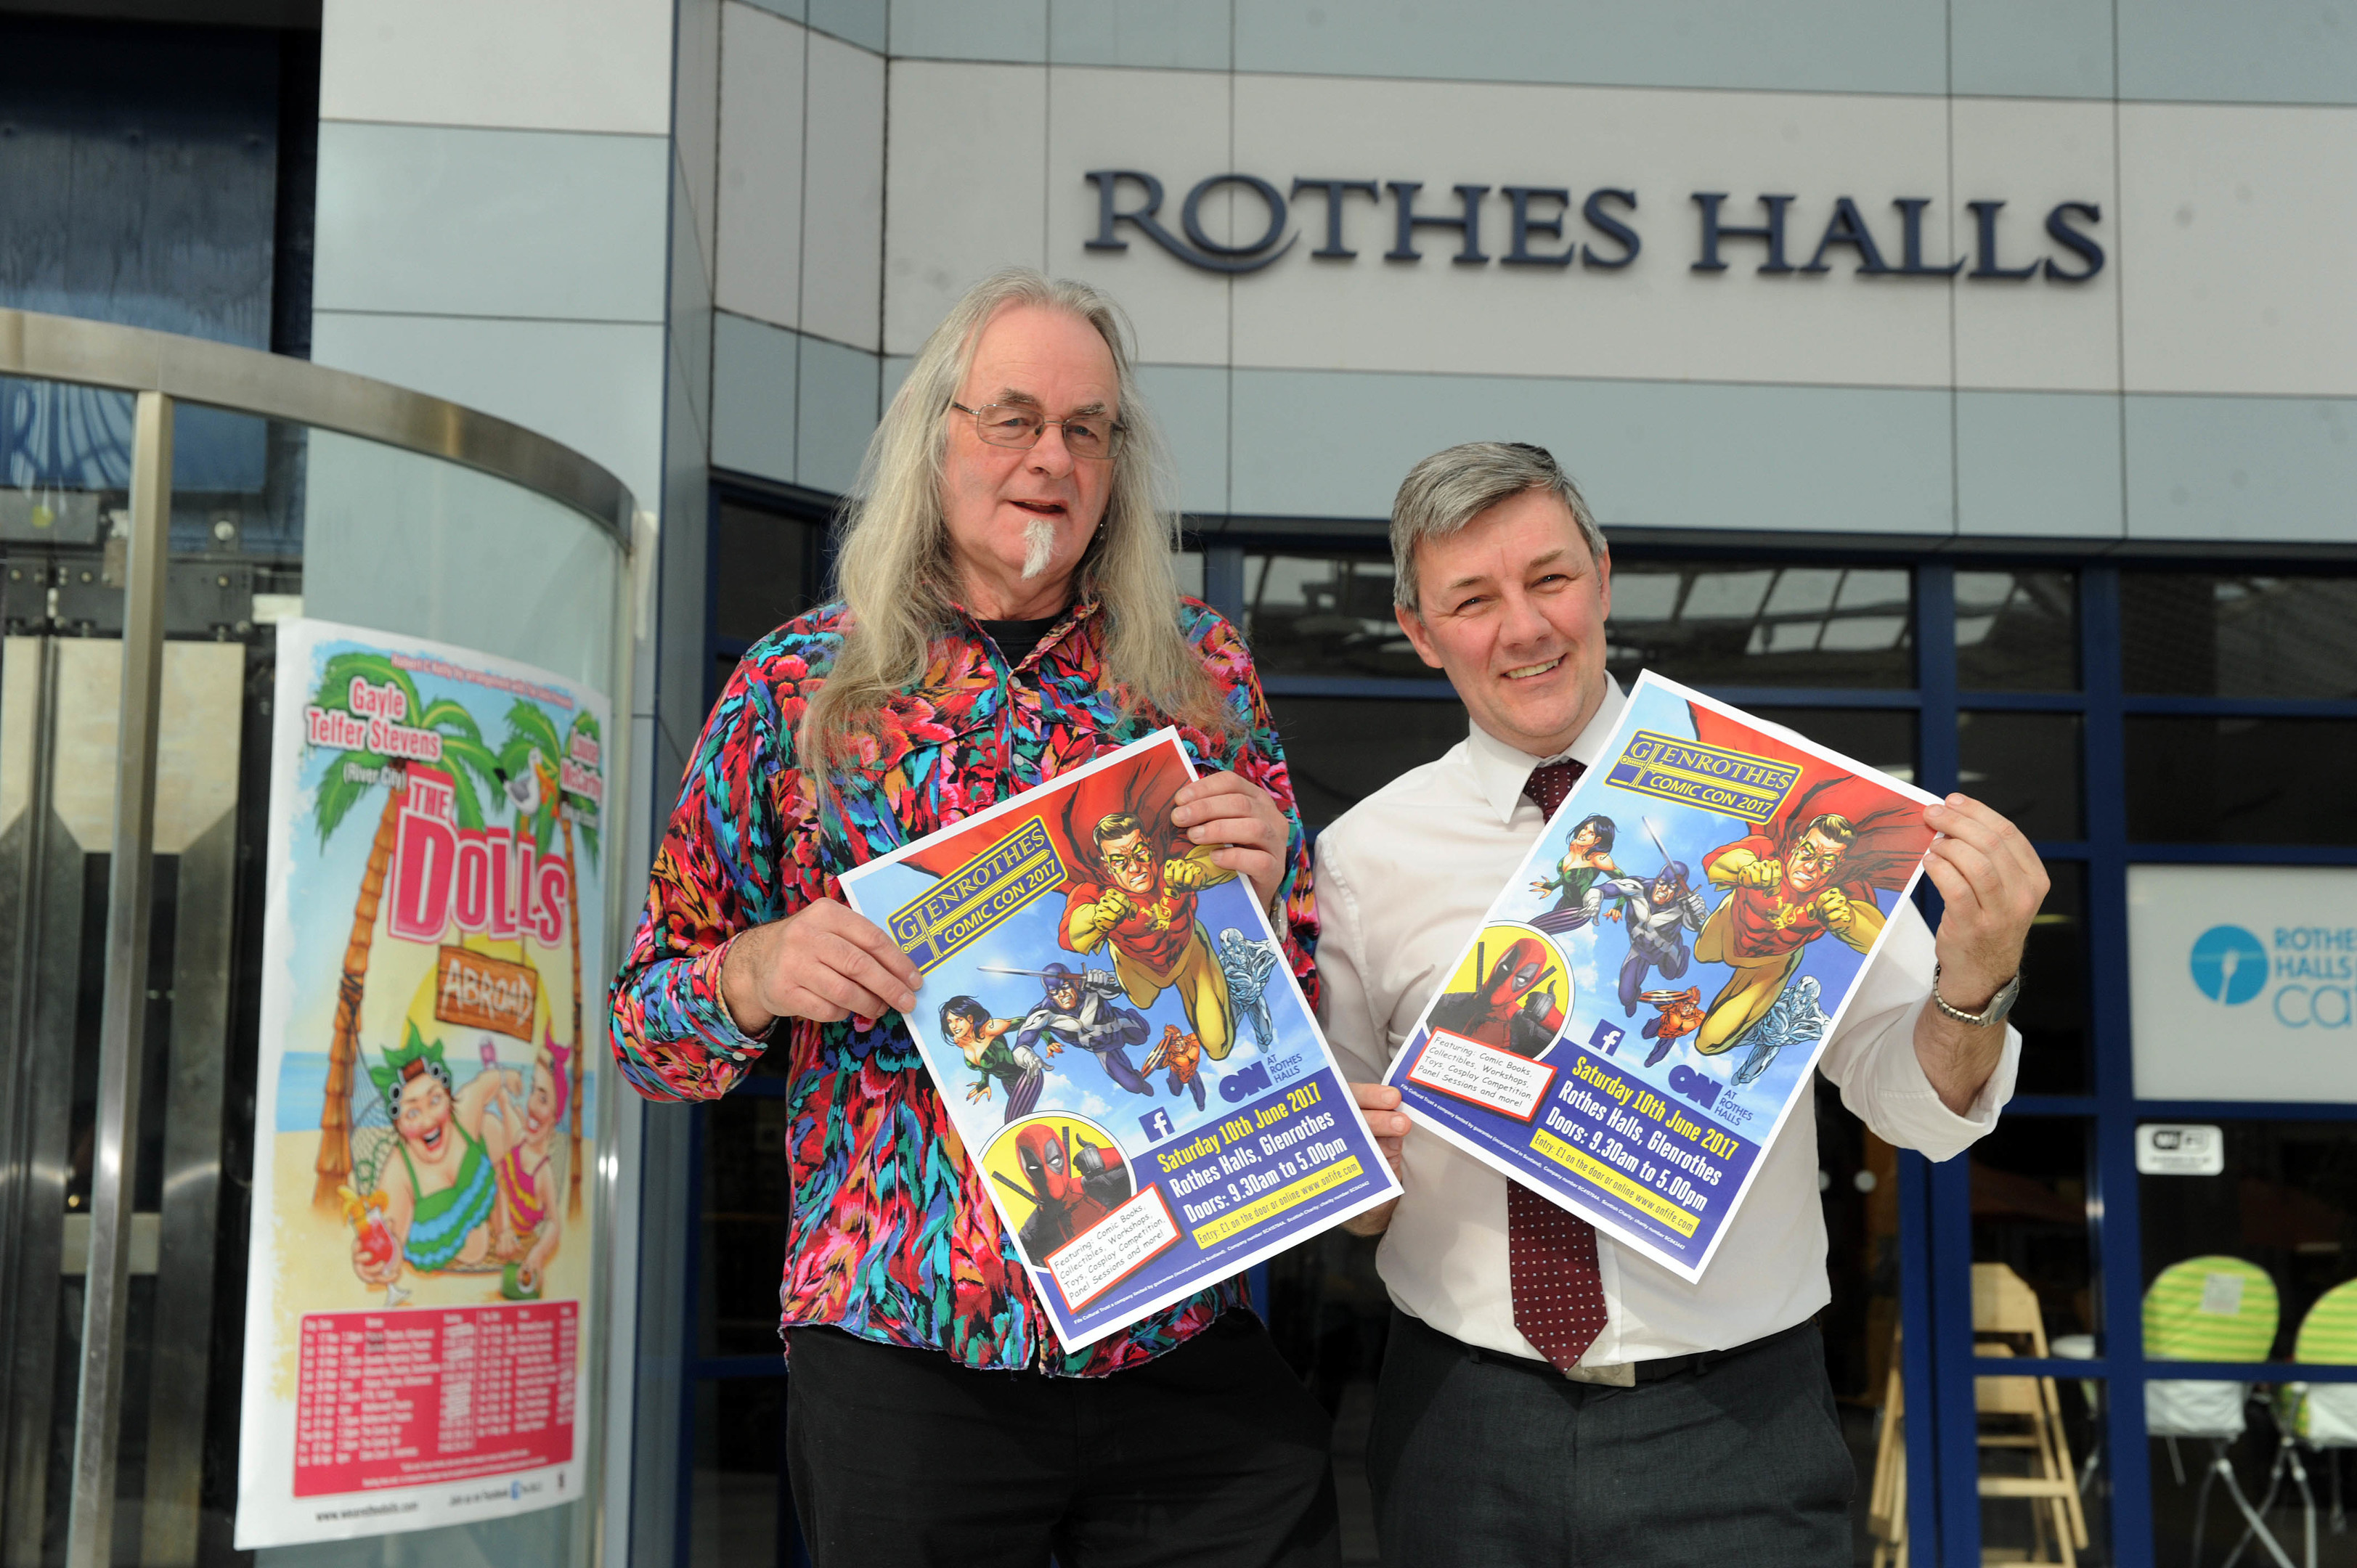 Michael Mowat and Altany Craik of Go Glenrothes at the Rothes Halls to promote Glenrothes Comic Con later this year.